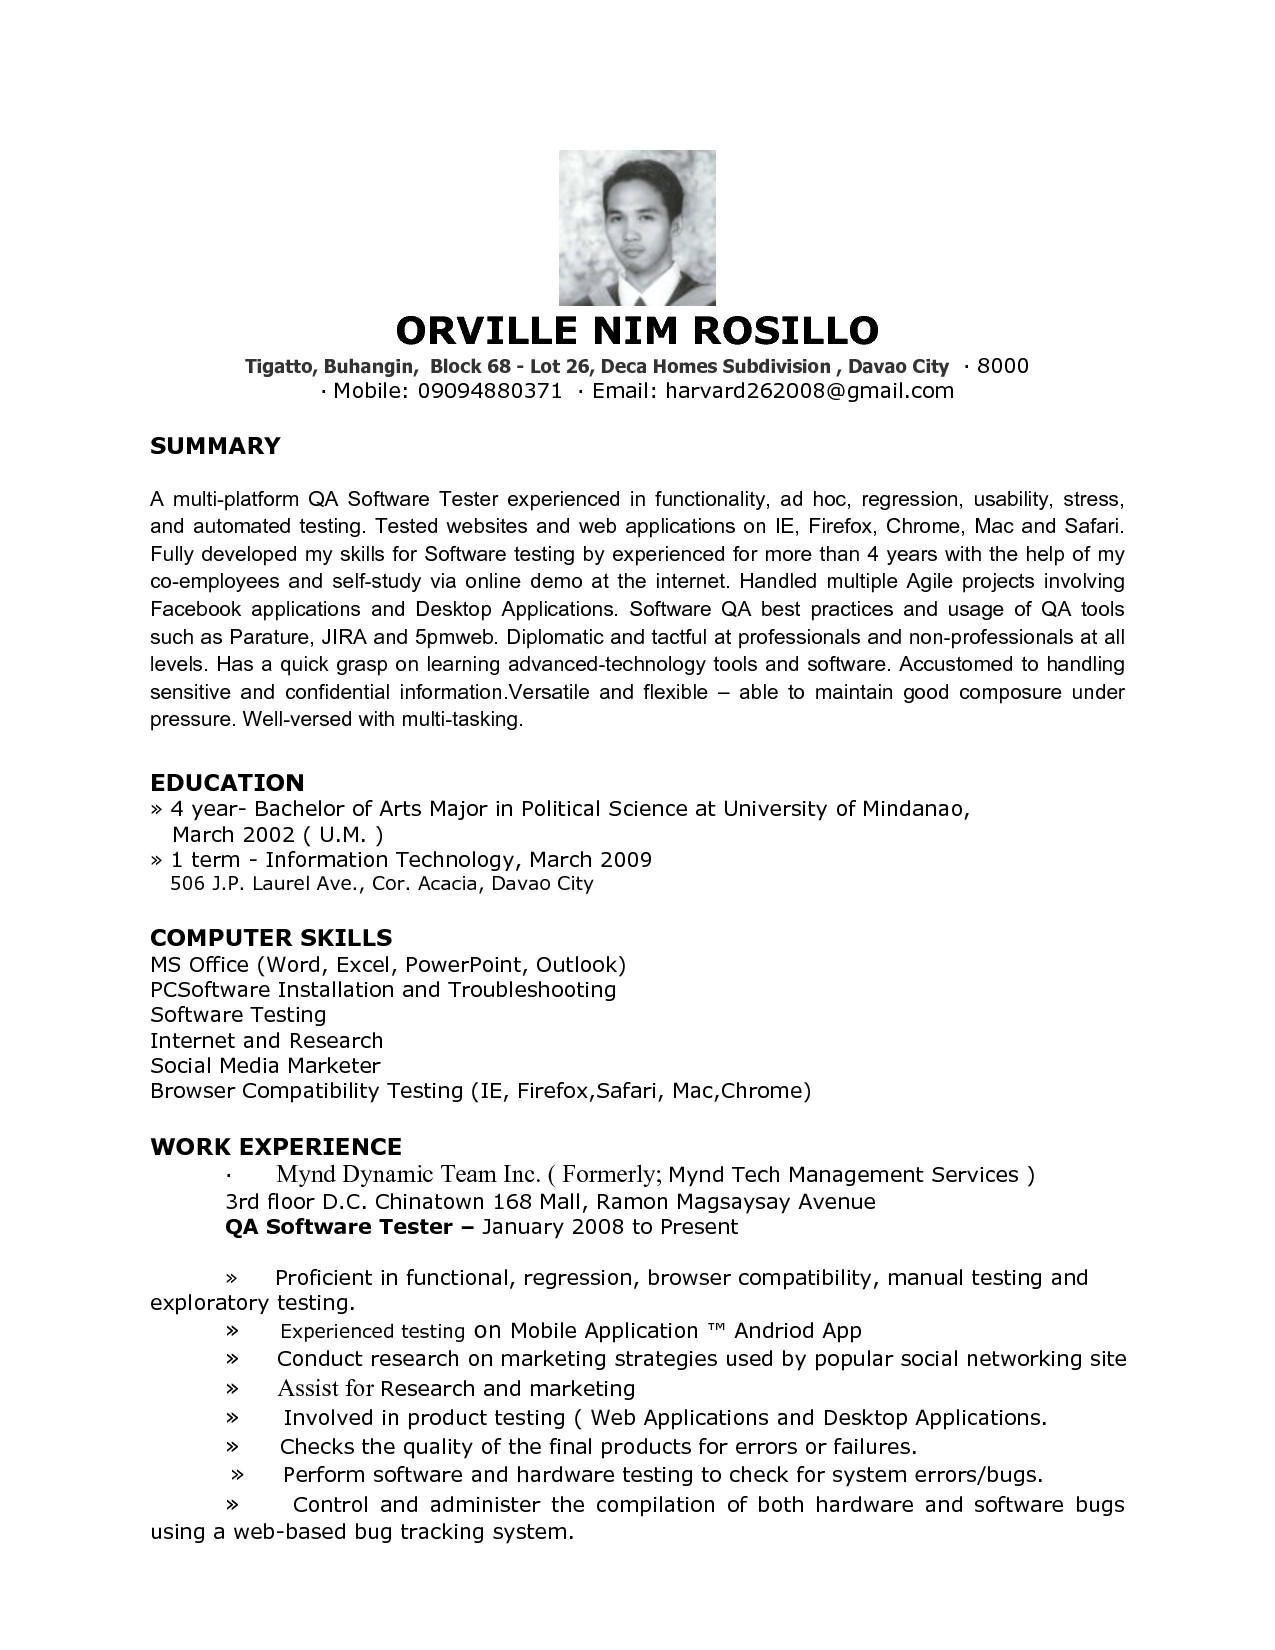 23 Fresh Entry Level Software Engineer Resume with Design